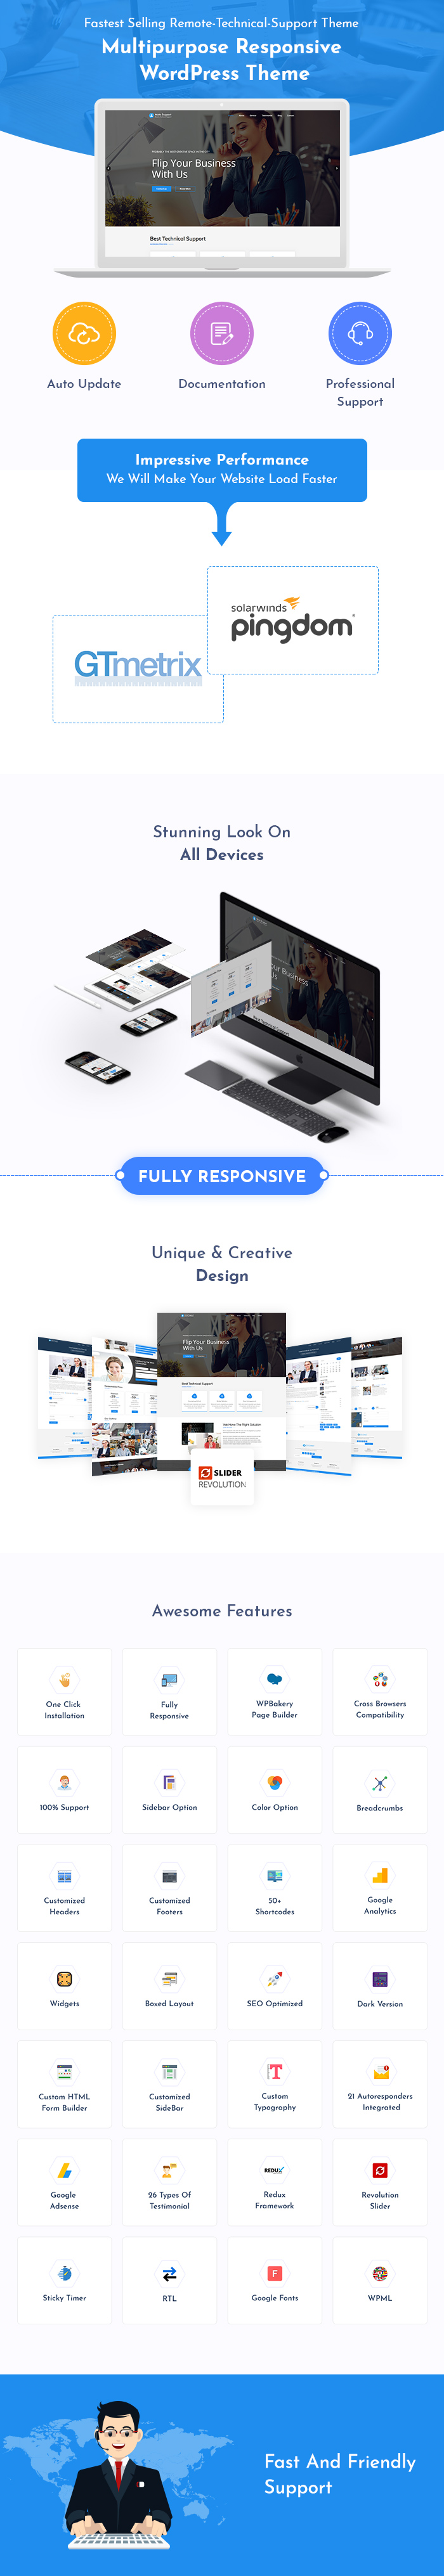 Remote Technical Support WordPress Themes